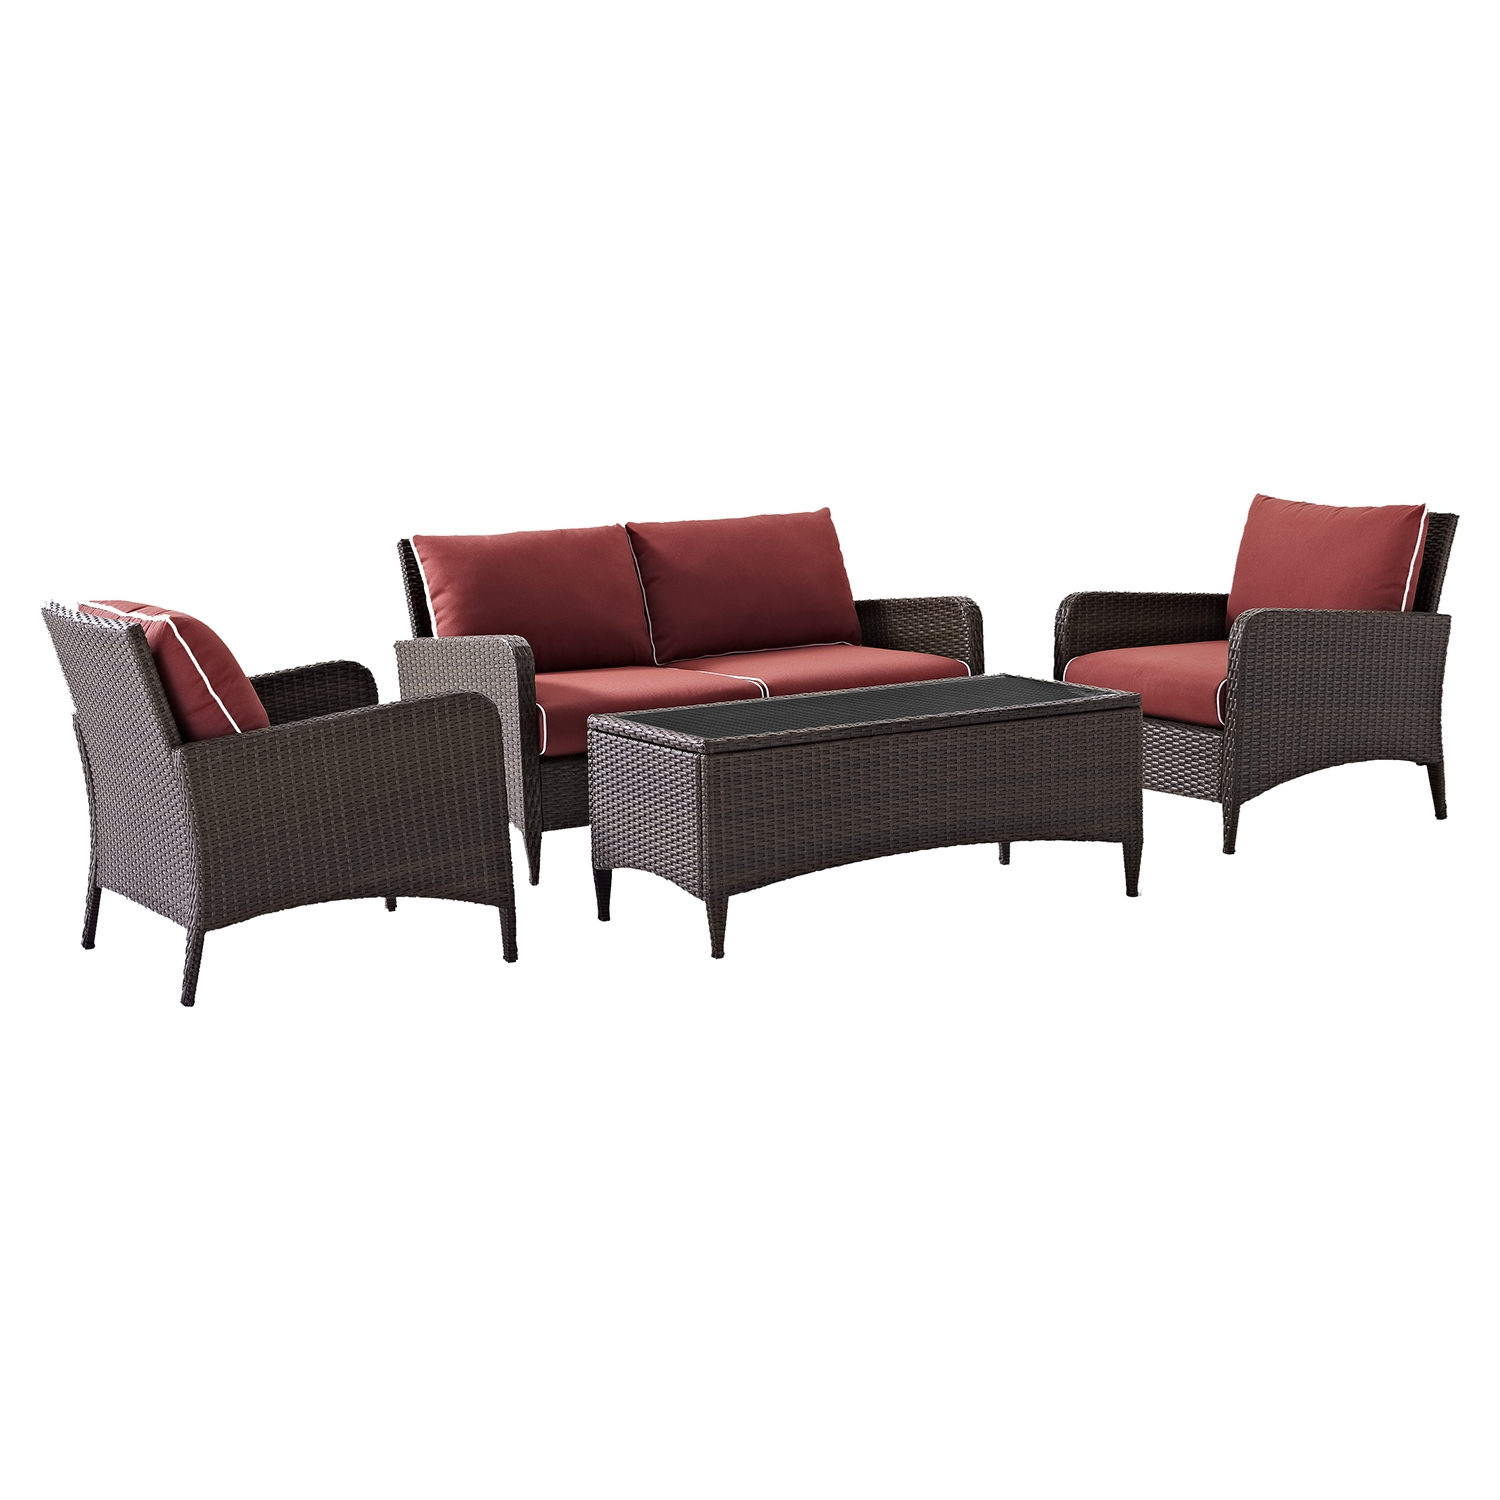 Kiawah 4-Piece Outdoor Wicker Seating Set with Sangria Cushions - CROS-KO70028BR